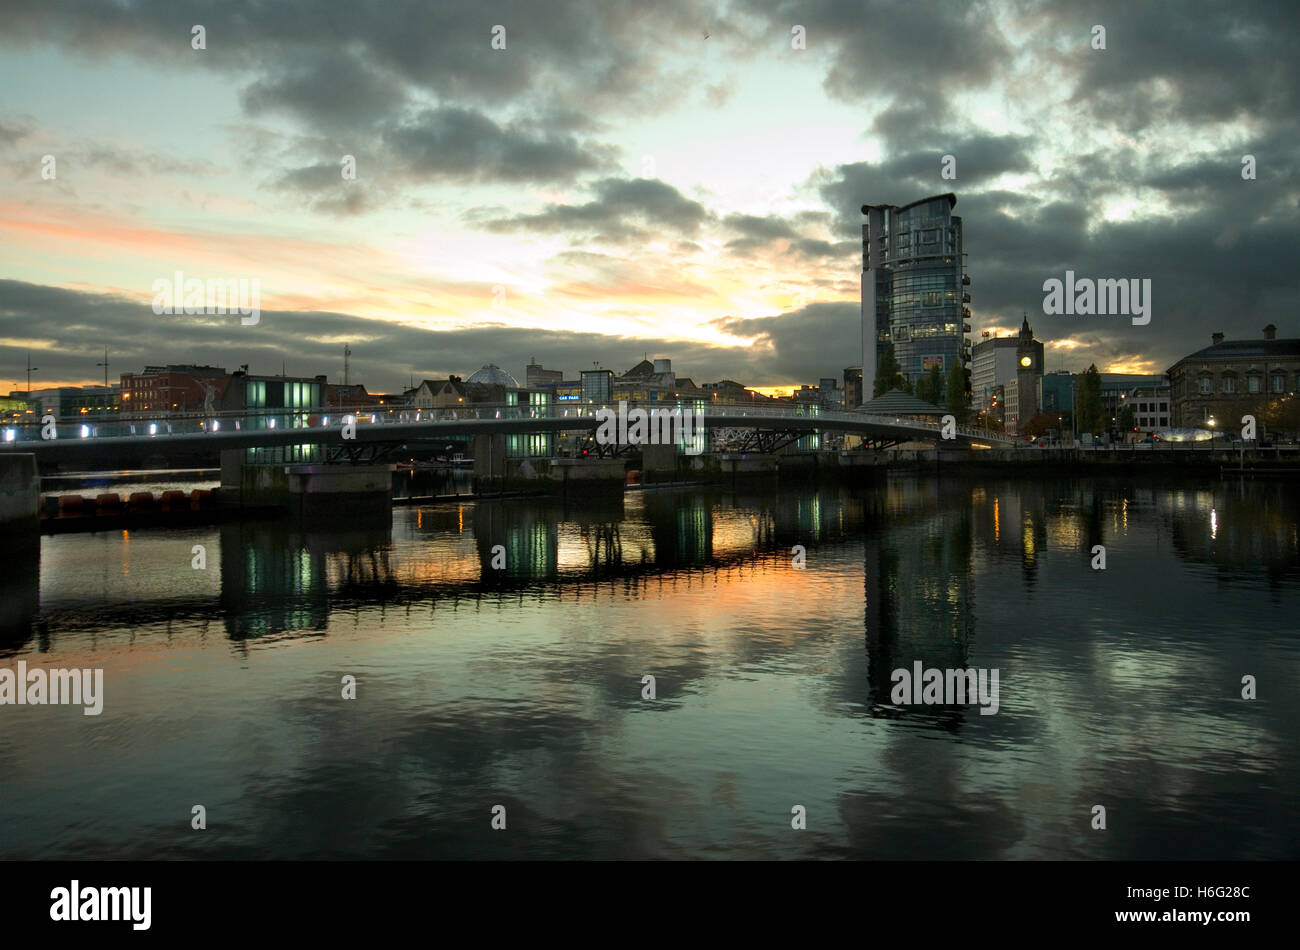 lagan-weir-taken-from-the-east-side-of-t